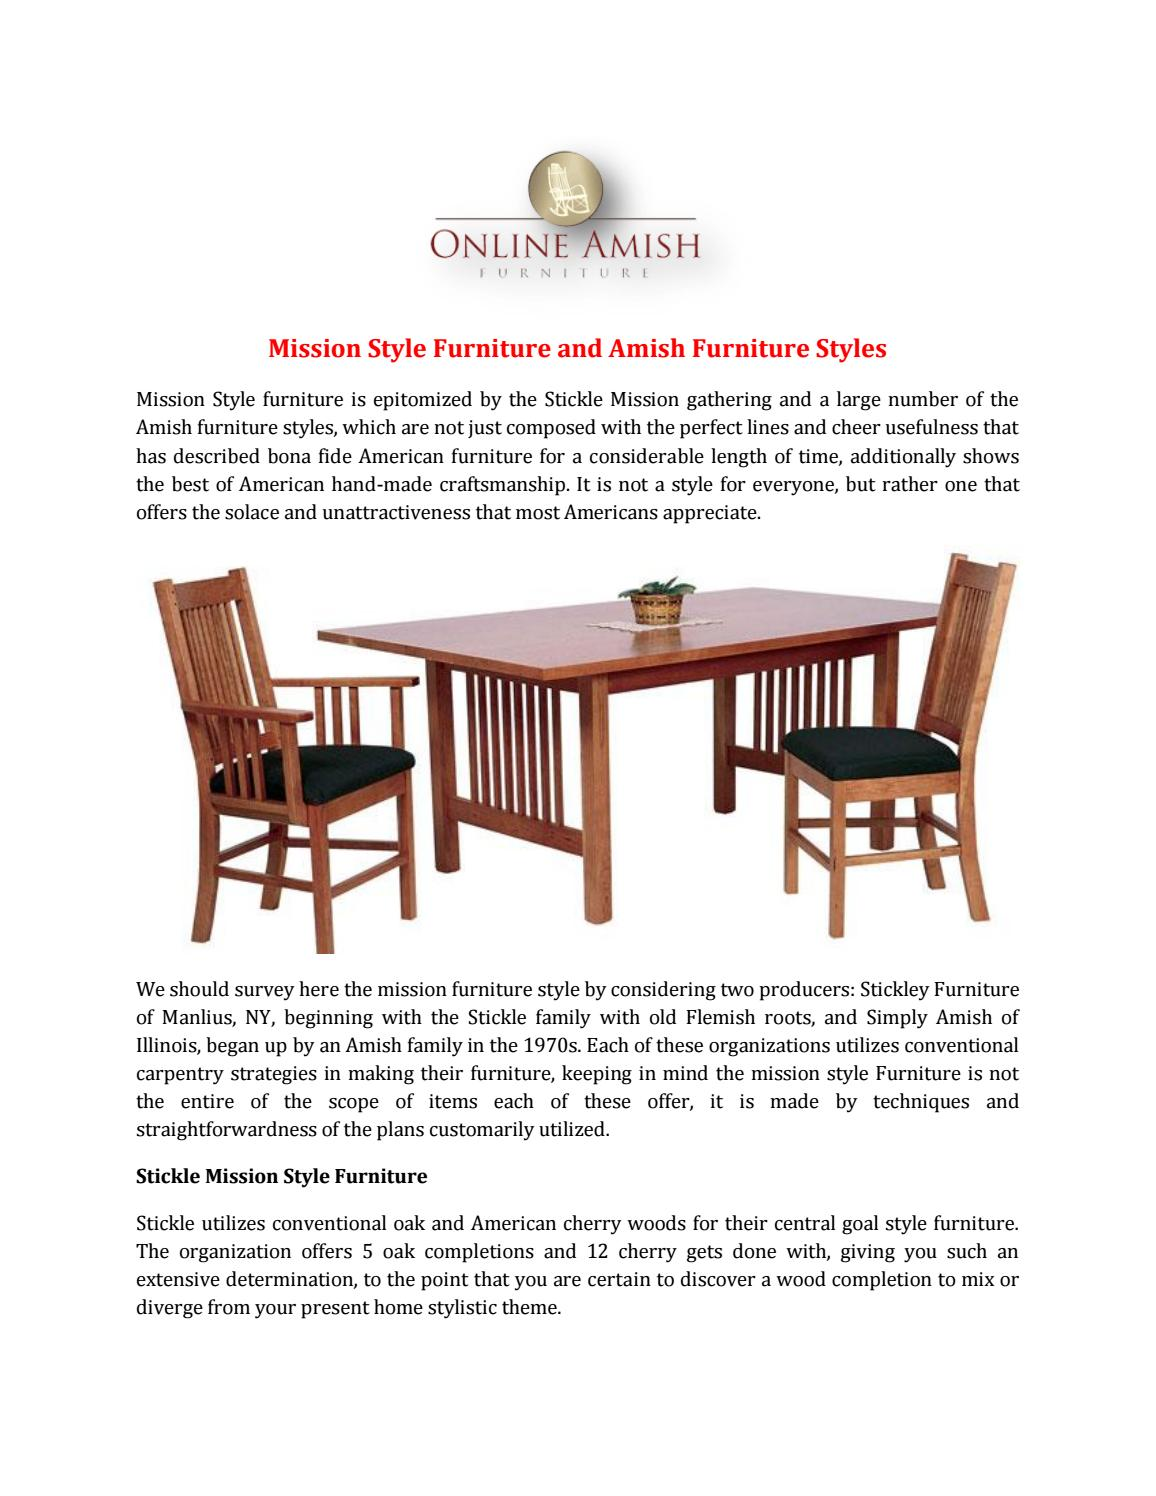 Mission Style Furniture And Amish Furniture Styles By Online